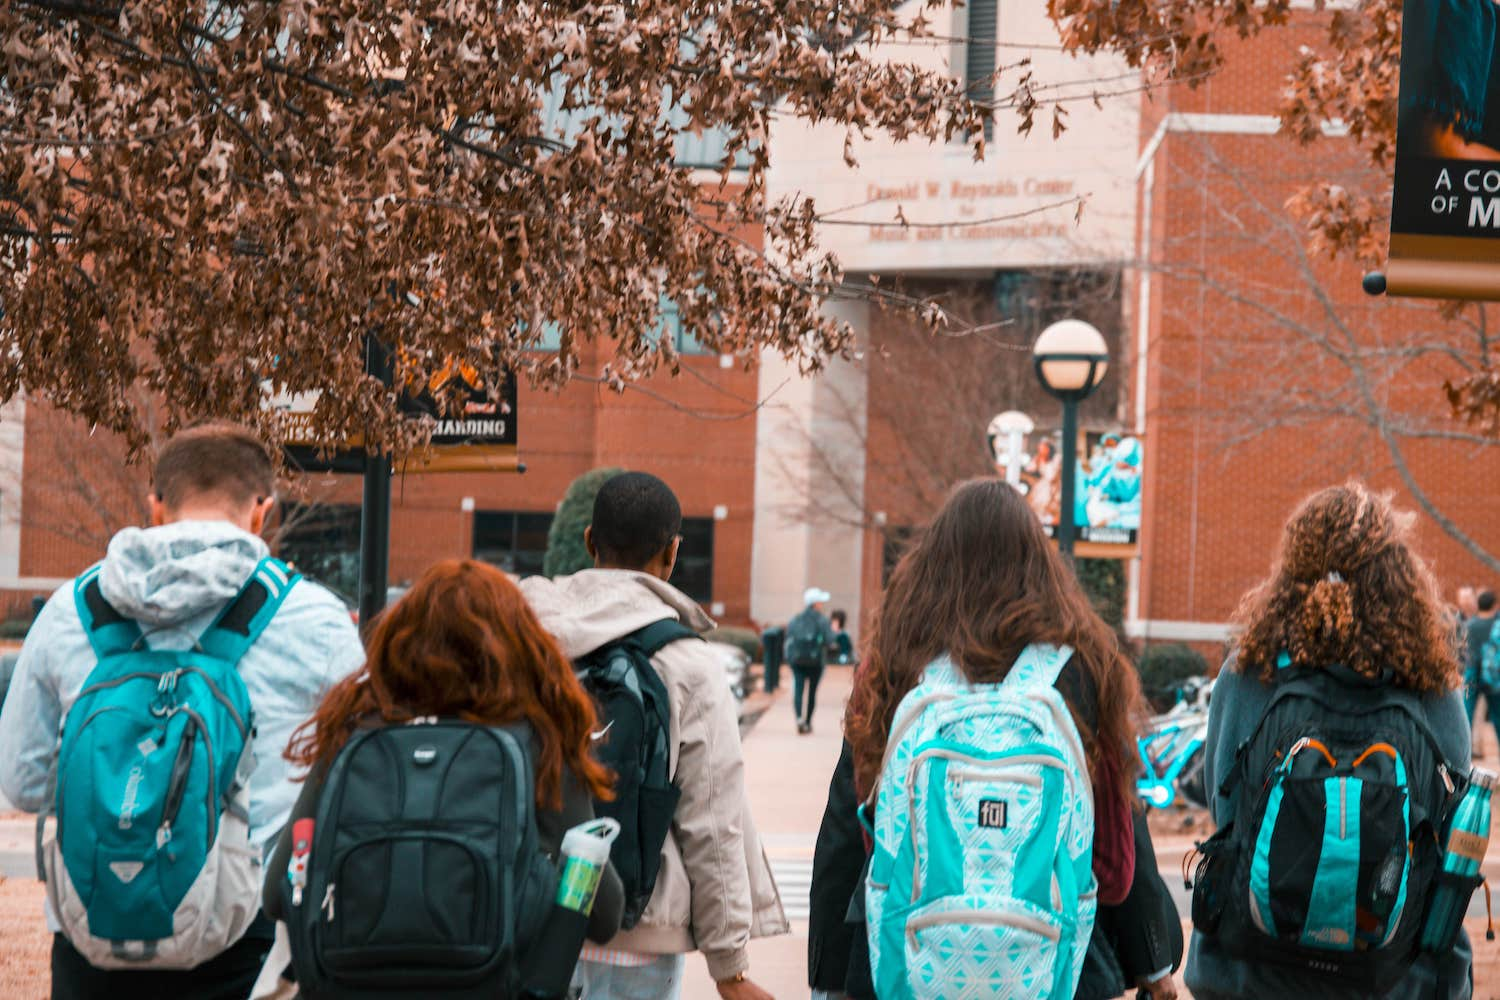 Things All College Freshmen Should Know Before Starting College